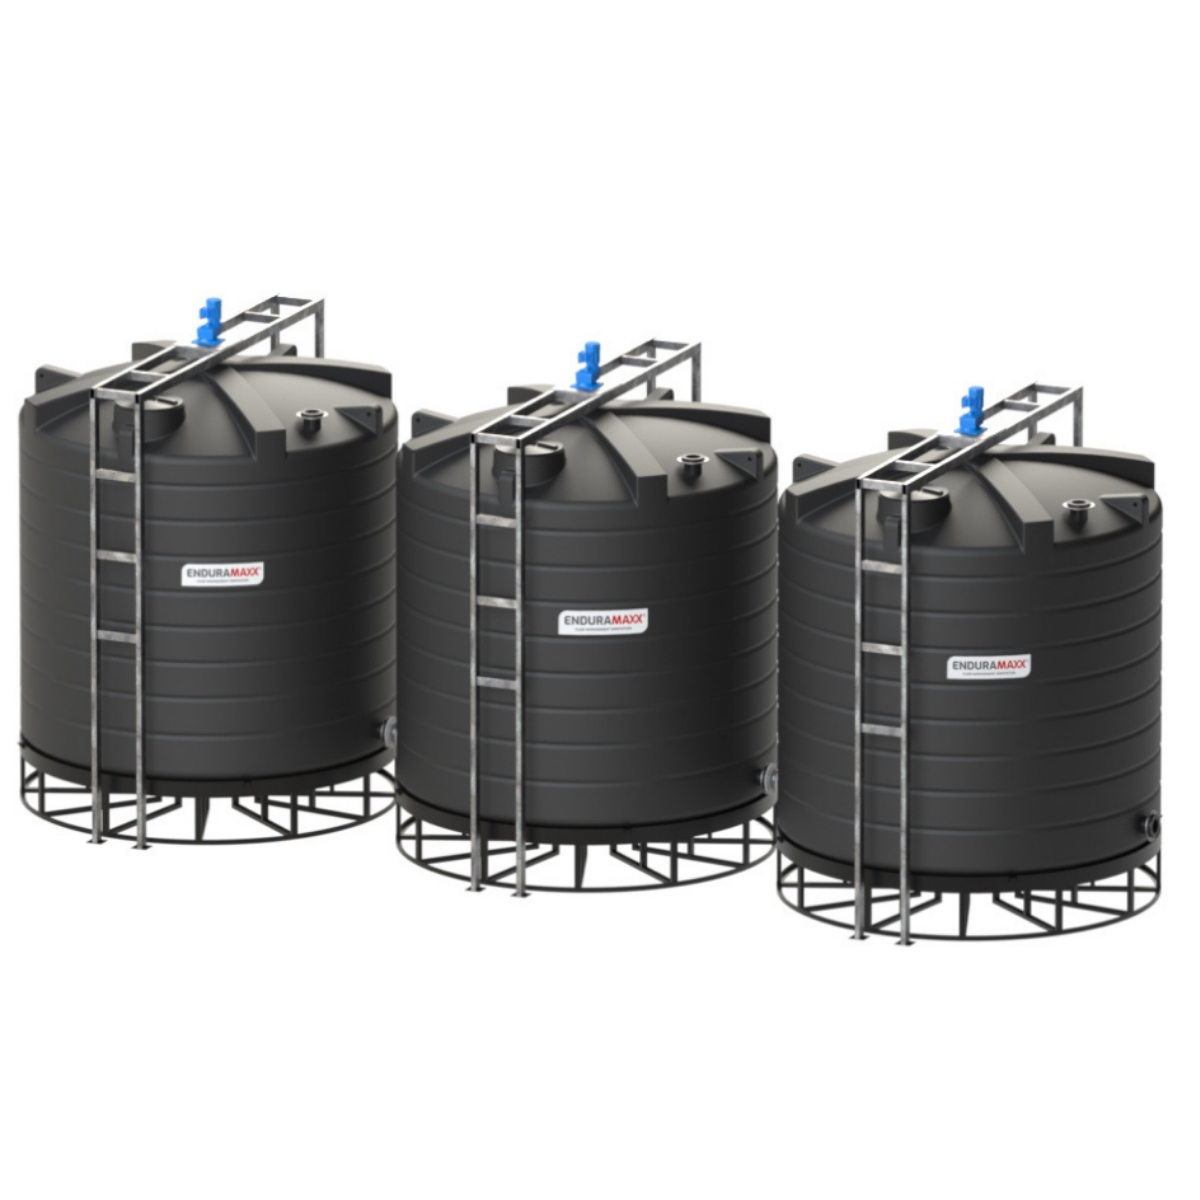 Enduramaxx Dished Based Solids Settling Tank